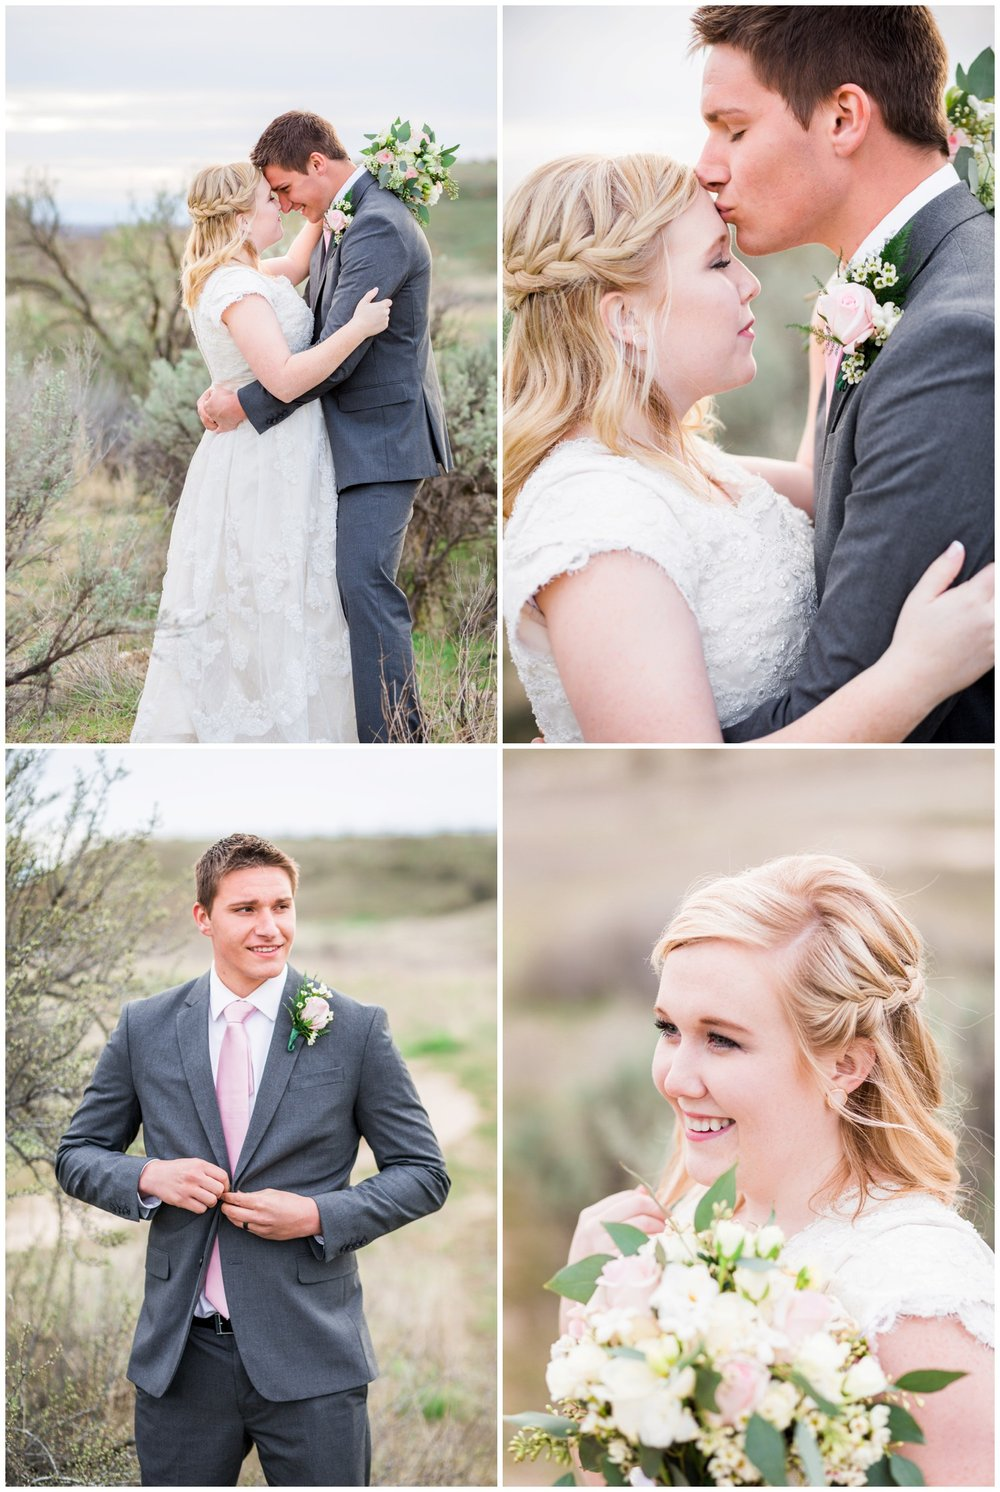 Intimate sunset bridal photos with Oregon wedding photographer.